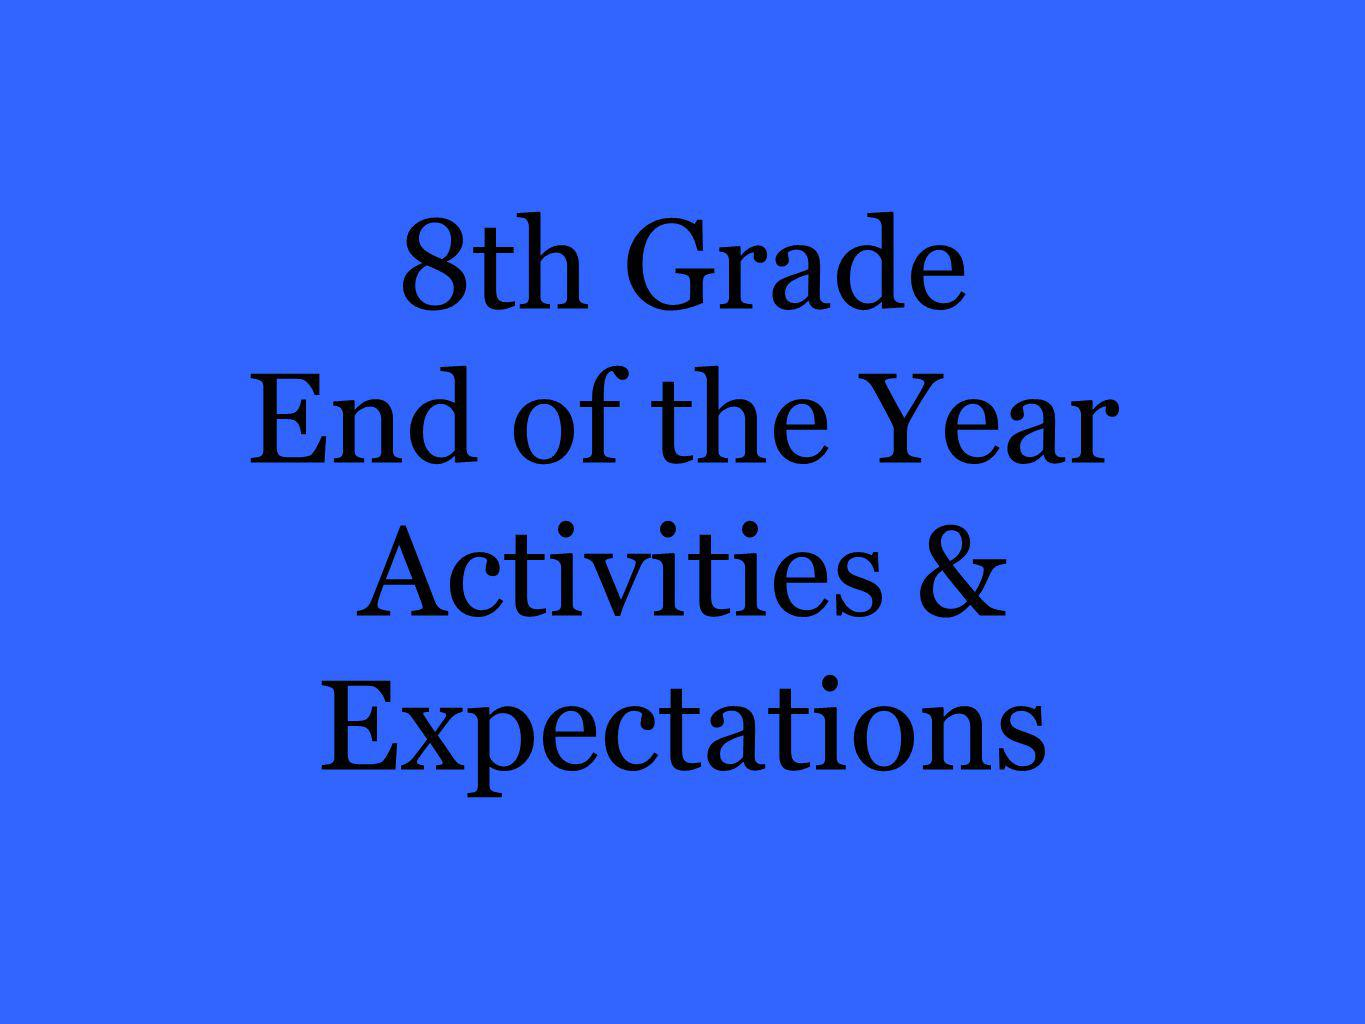 8th Grade End of the Year Activities & Expectations